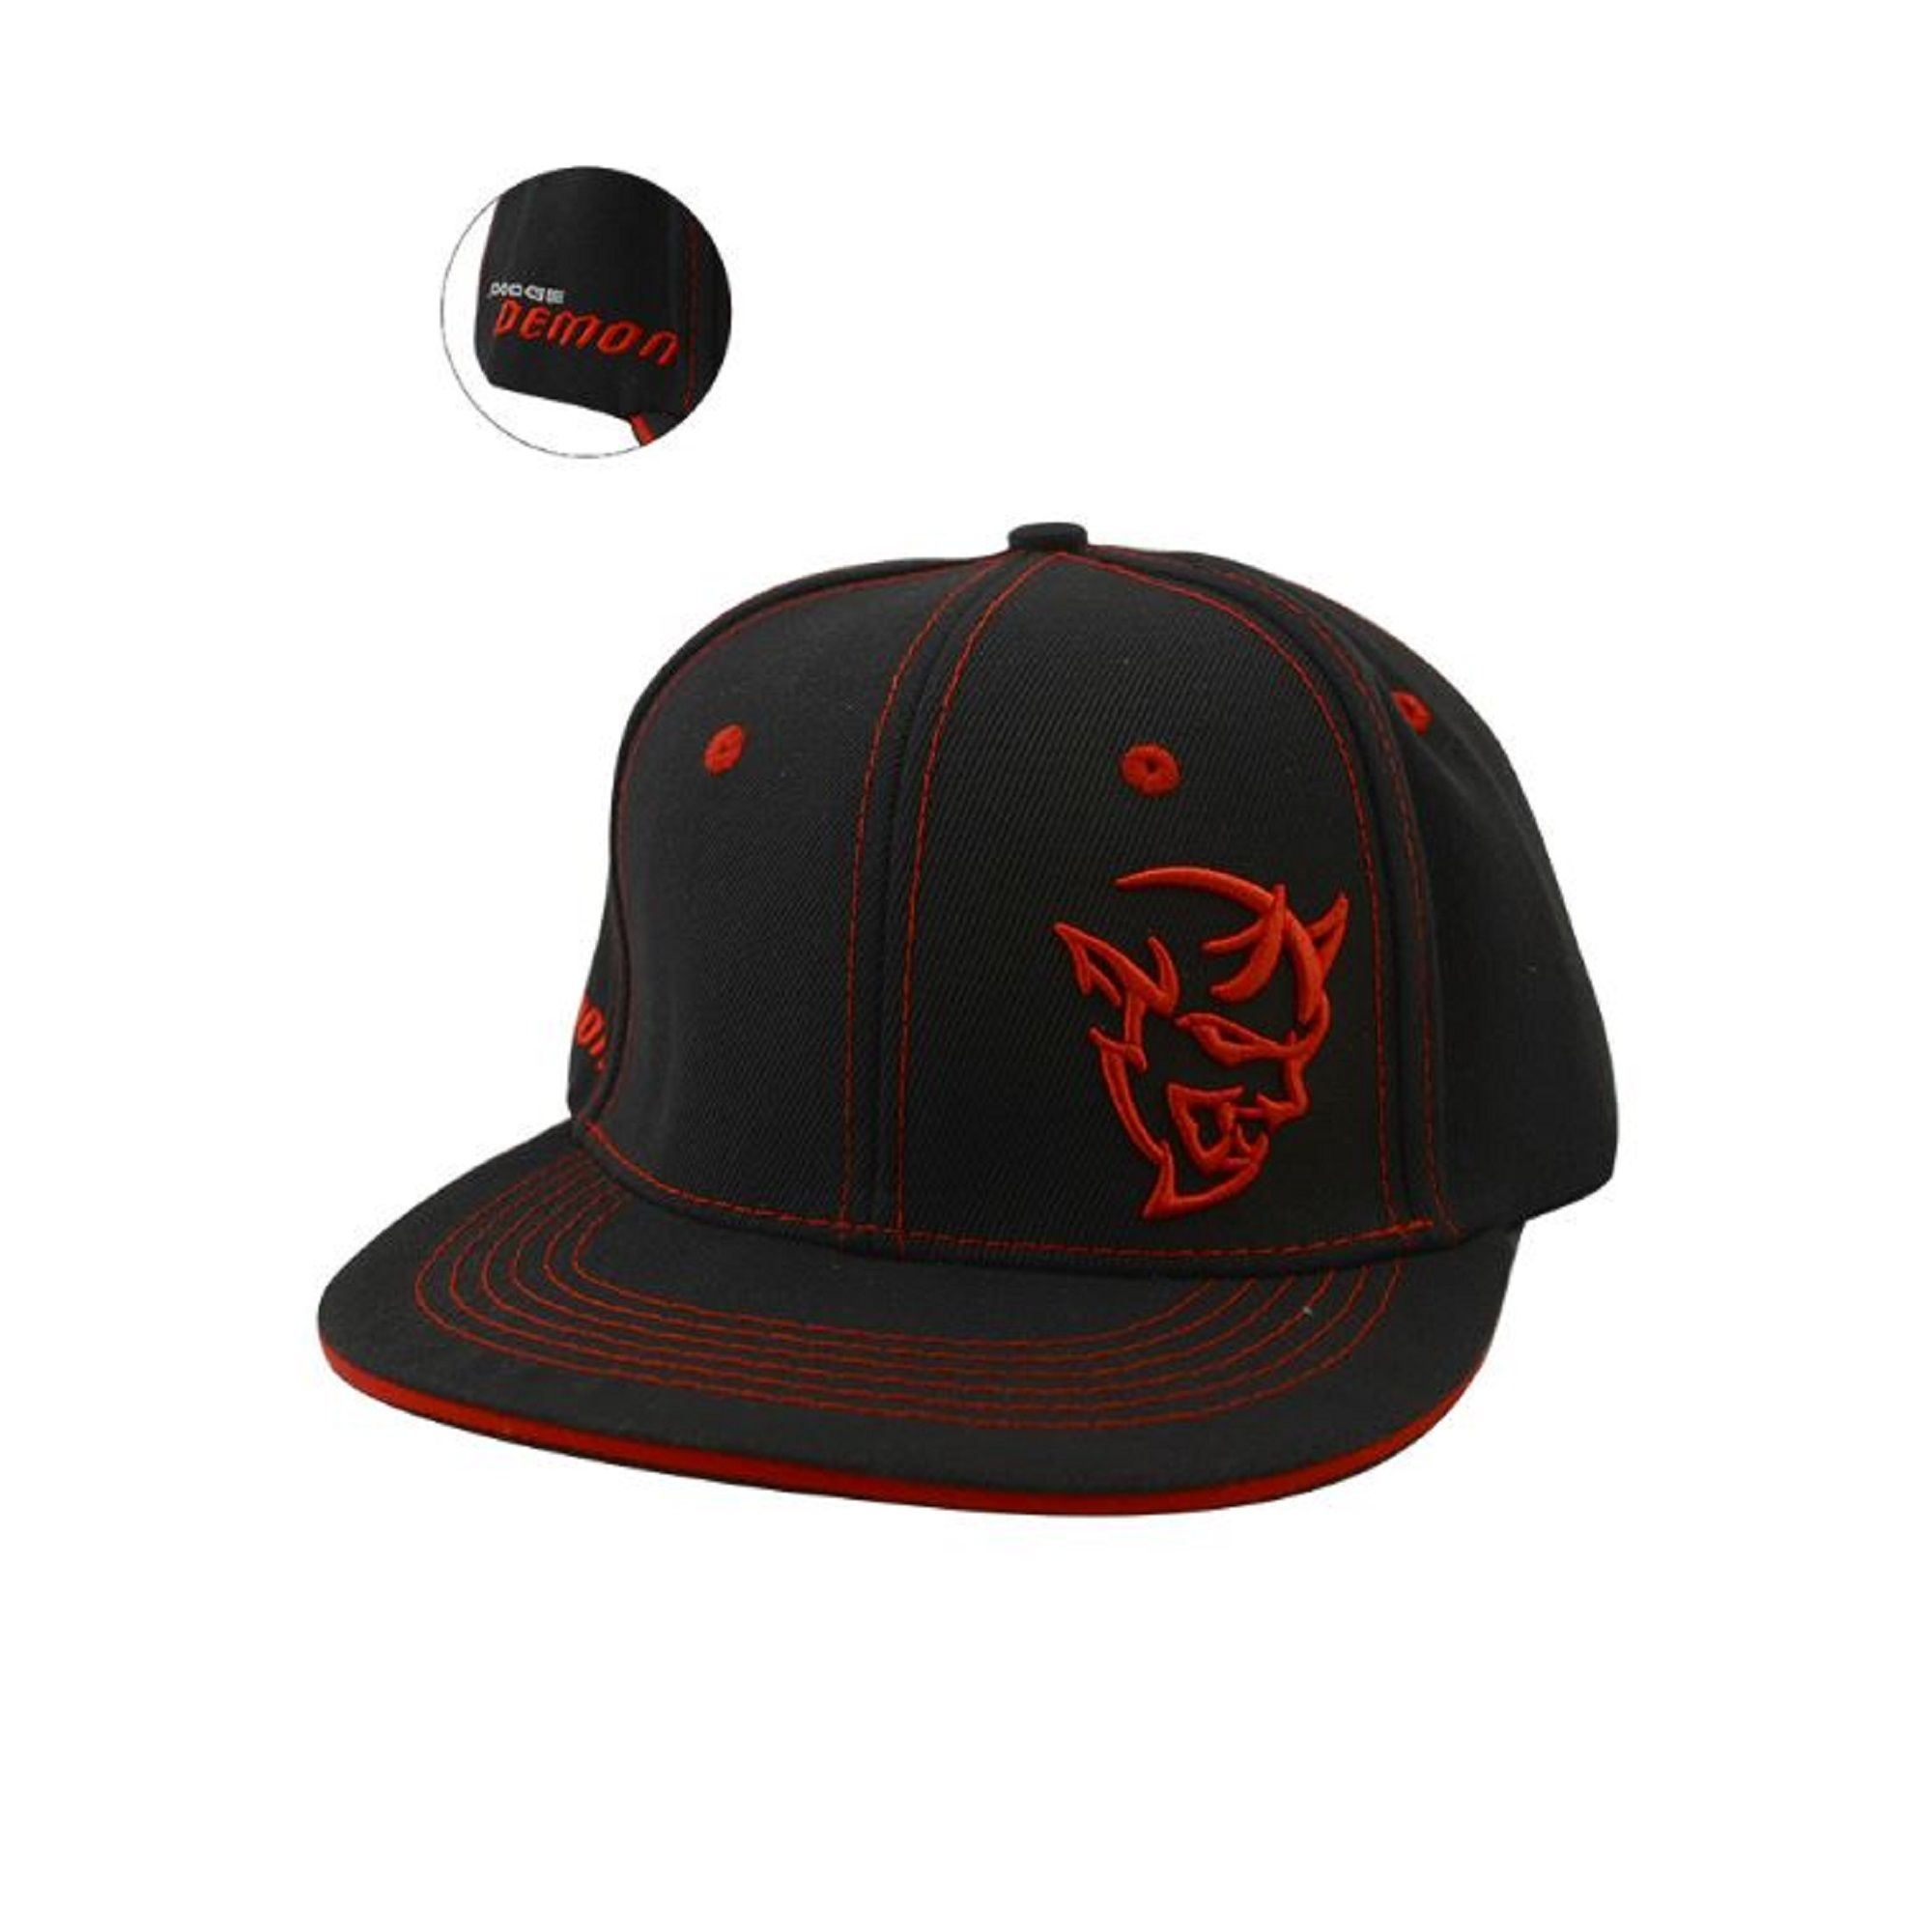 477b36c2f73c8 This hat is running low on stock! Get it while you can!